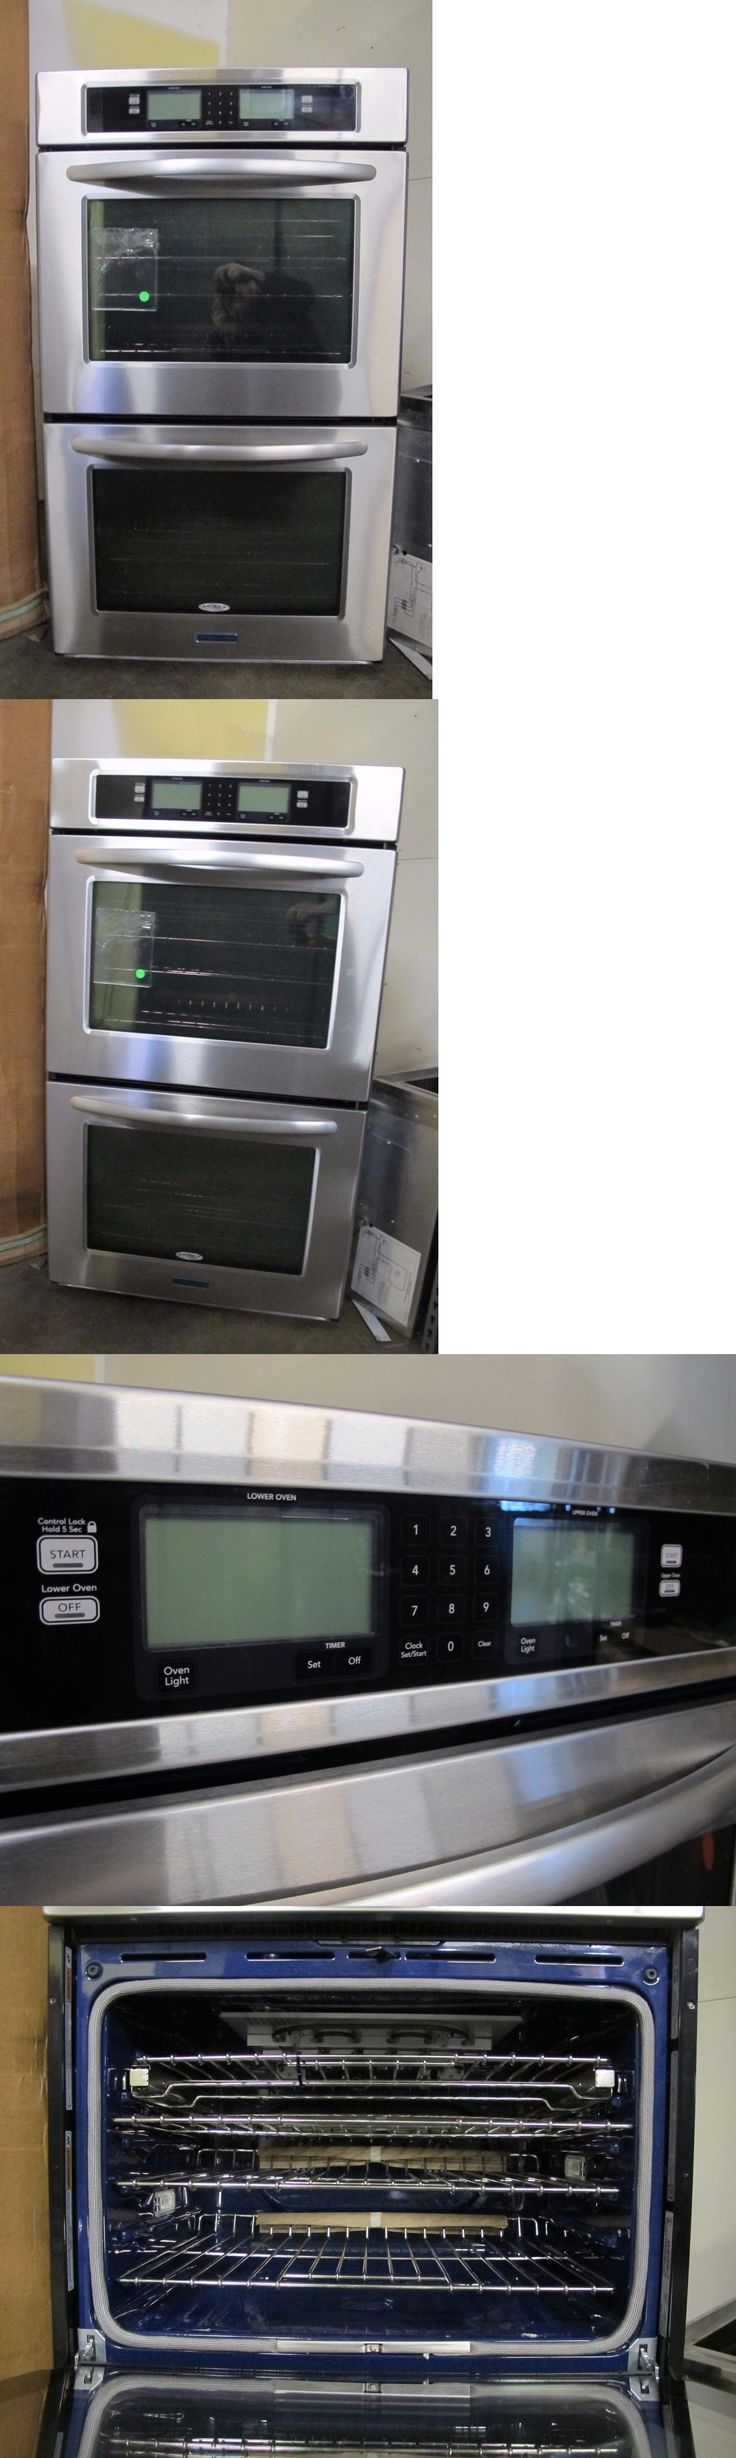 Wall Ovens 71318: Kitchenaid Architect Series Ii 30 Stainless Steel Built-In Double Electric Oven -> BUY IT NOW ONLY: $3600 on eBay!